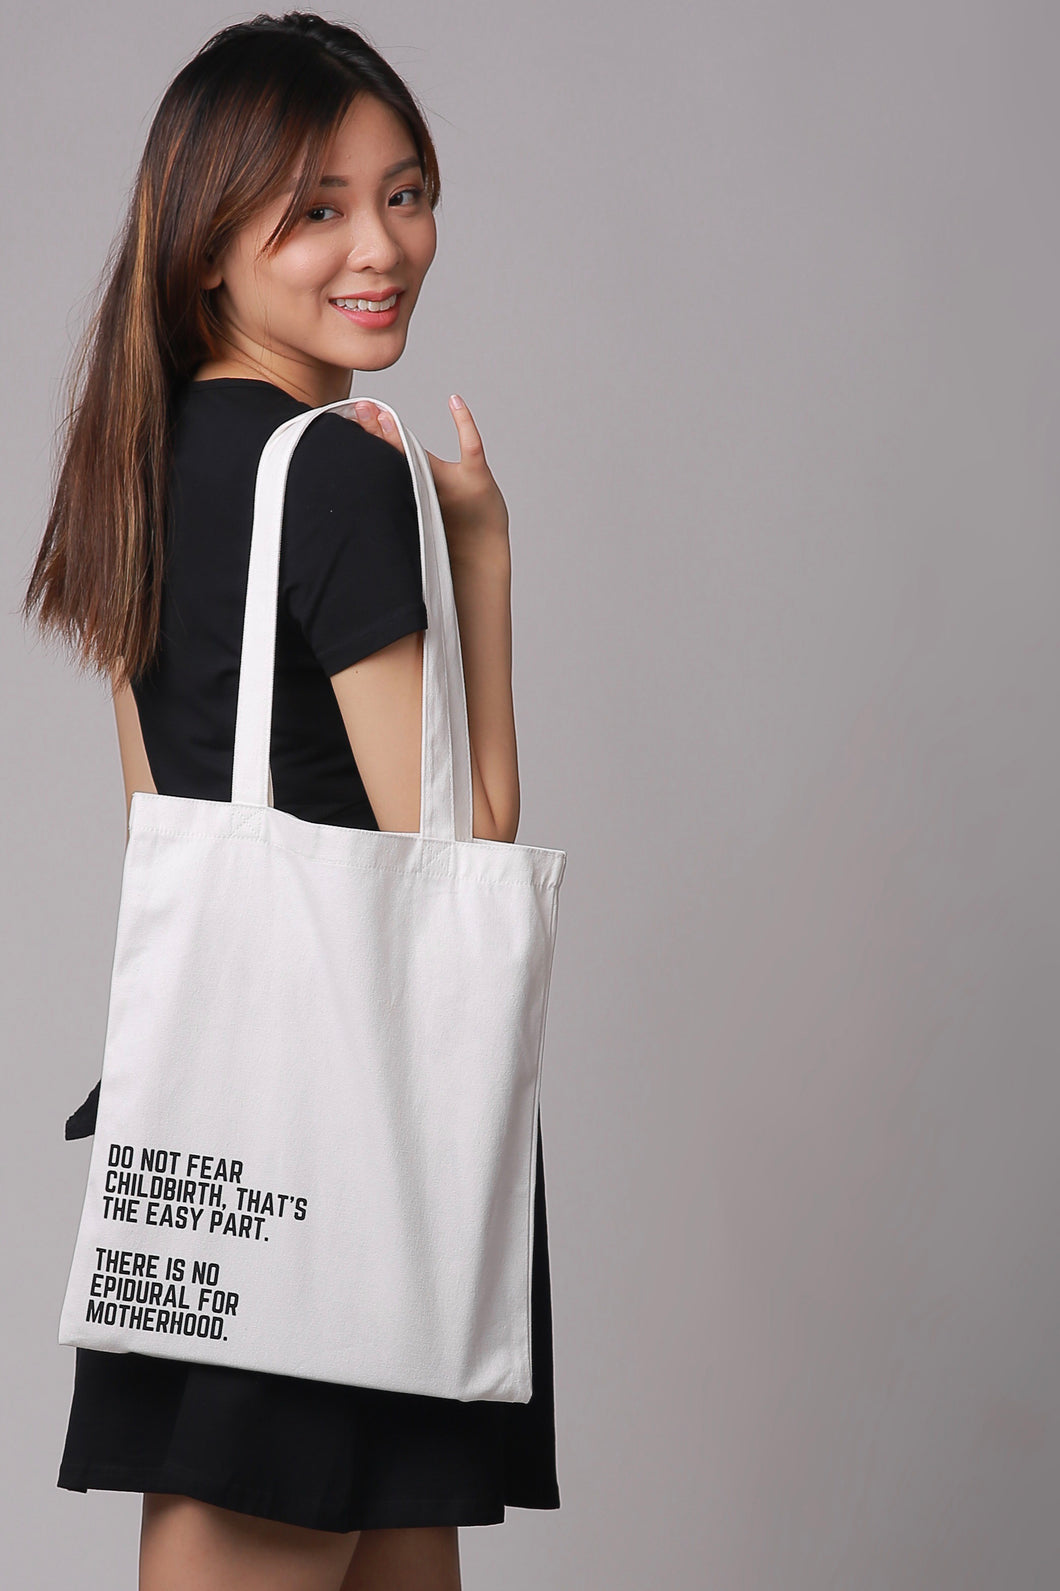 Tote Bag: No epidural for parenthood